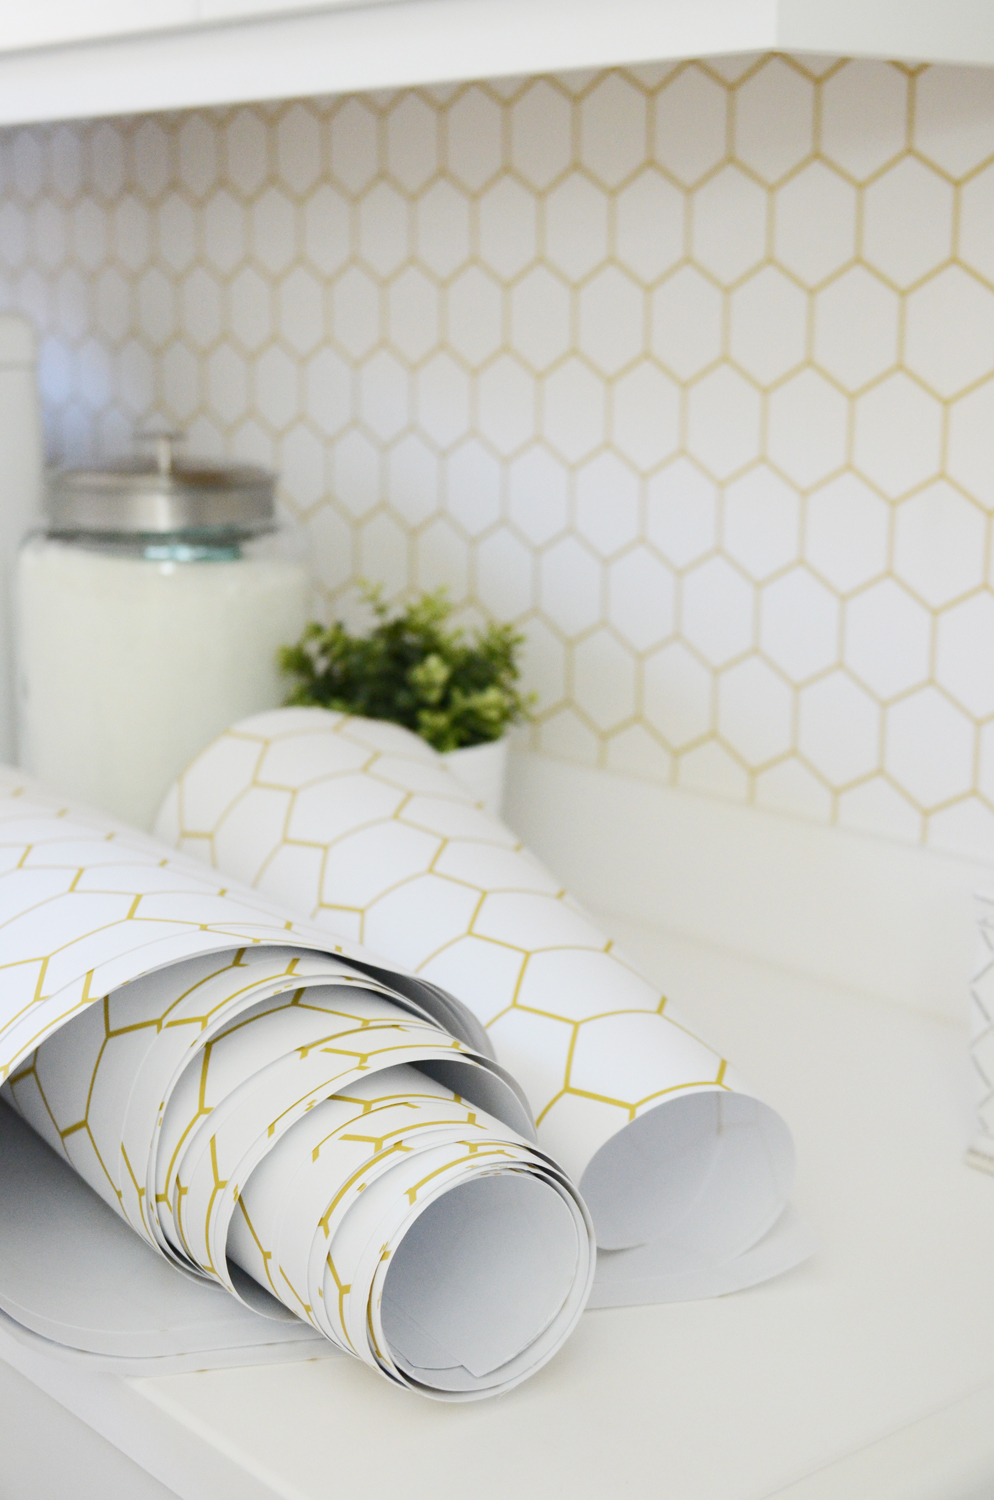 Merrick's Art Gold Hexagon Wallpaper Walls Need Love